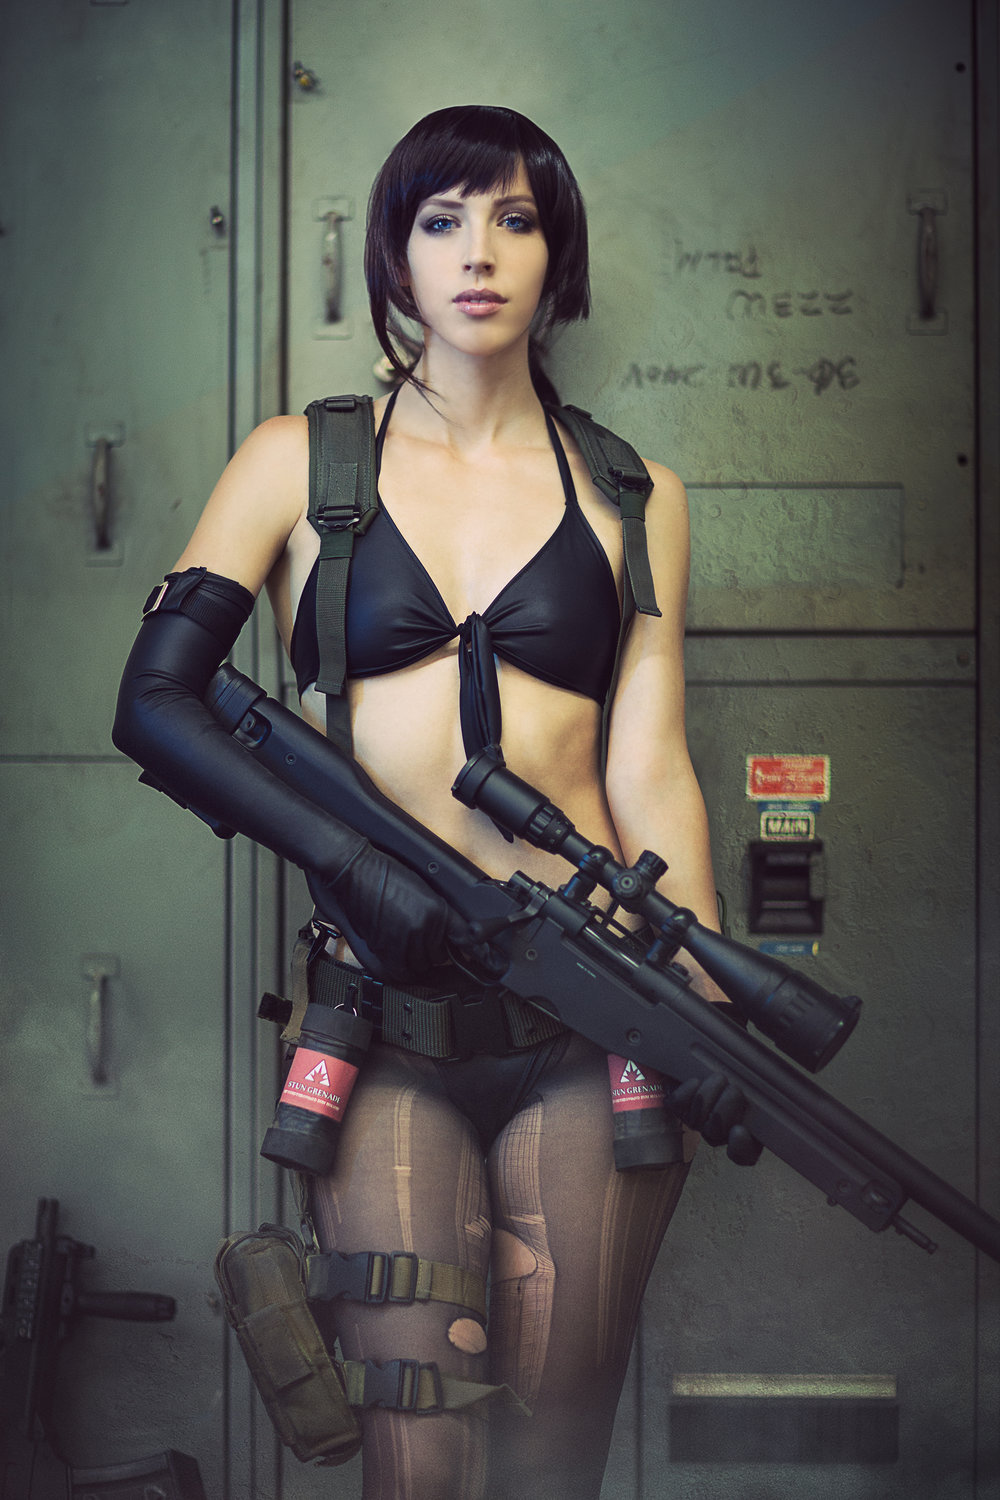 QUIET - METAL GEAR SOLID V